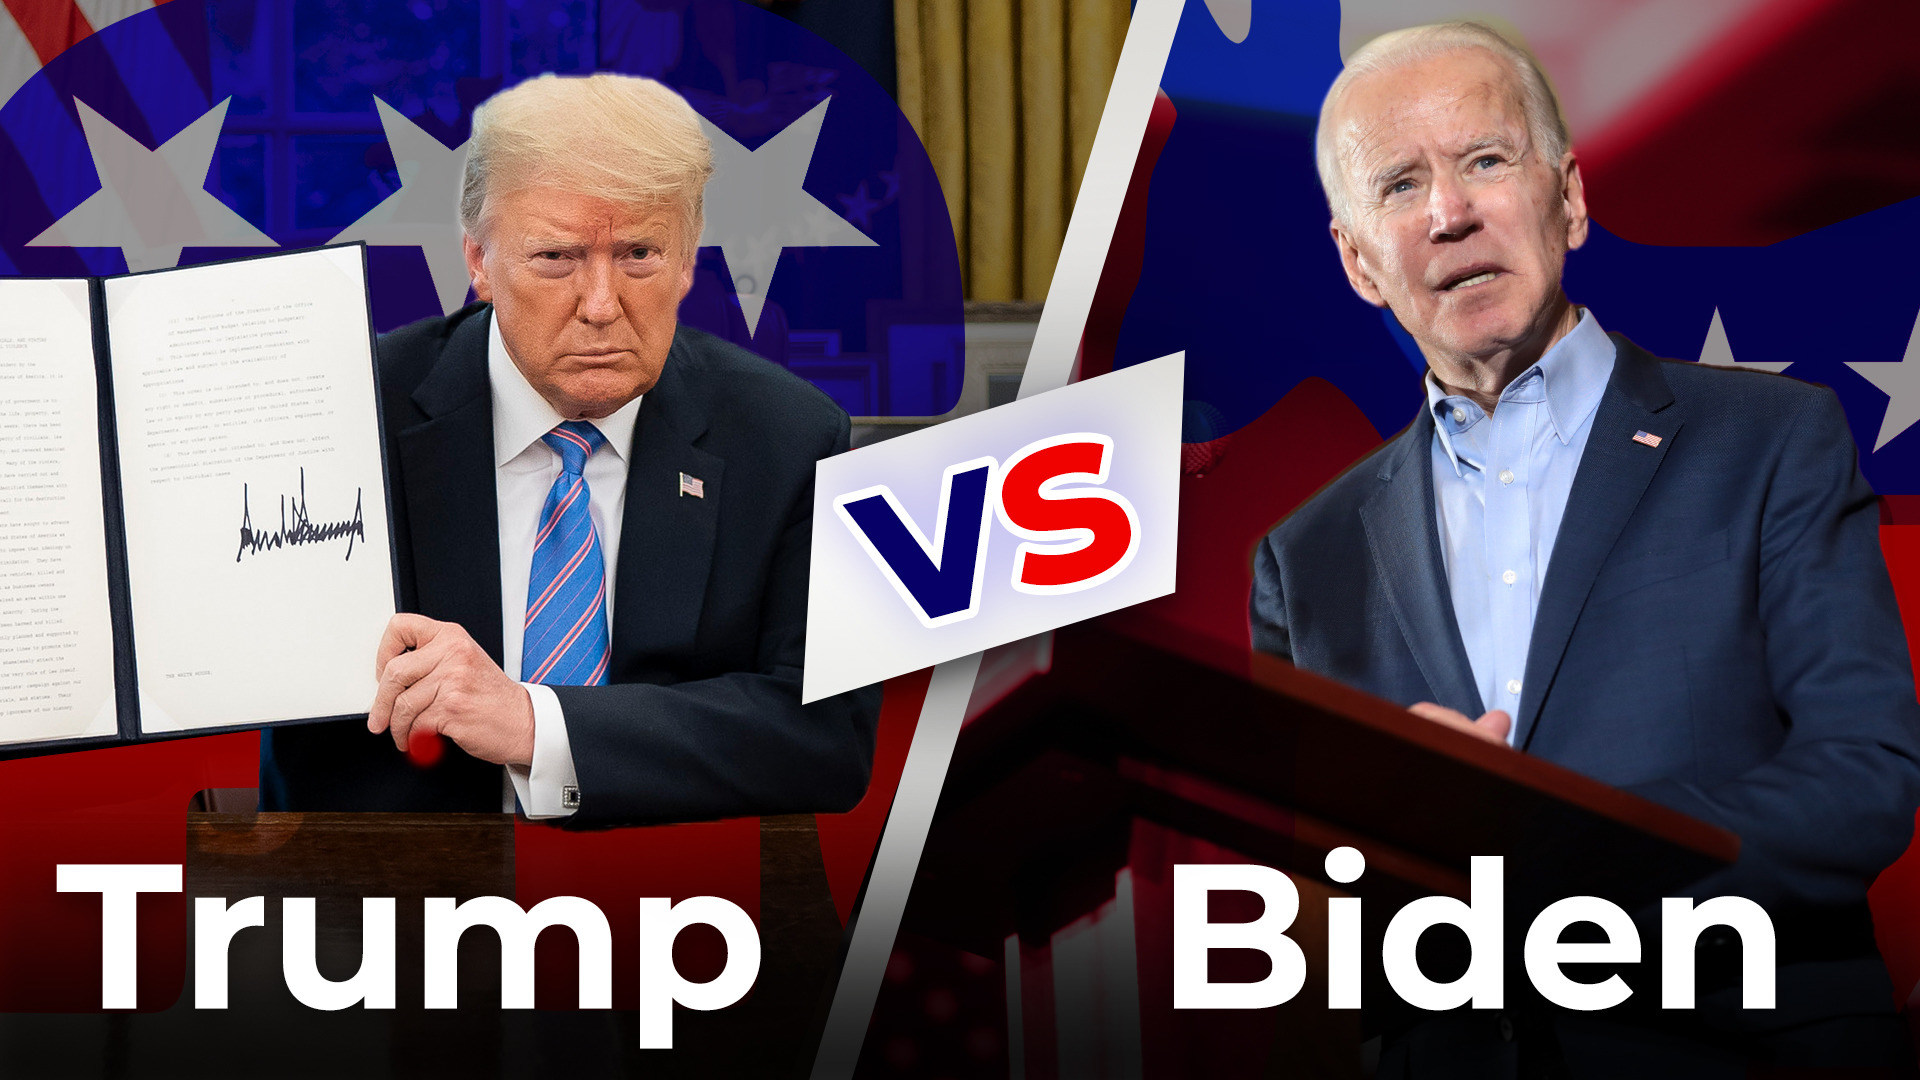 Usa, trump, Donald Trump, Präsident, US-Präsident, Weißes Haus, Versus, US-Wahl, US-Wahlen, US-Wahlen 2020, USA 2020, Joe Biden, Trump vs Biden, Donald Trump vs Joe Biden, Donald vs. Joe